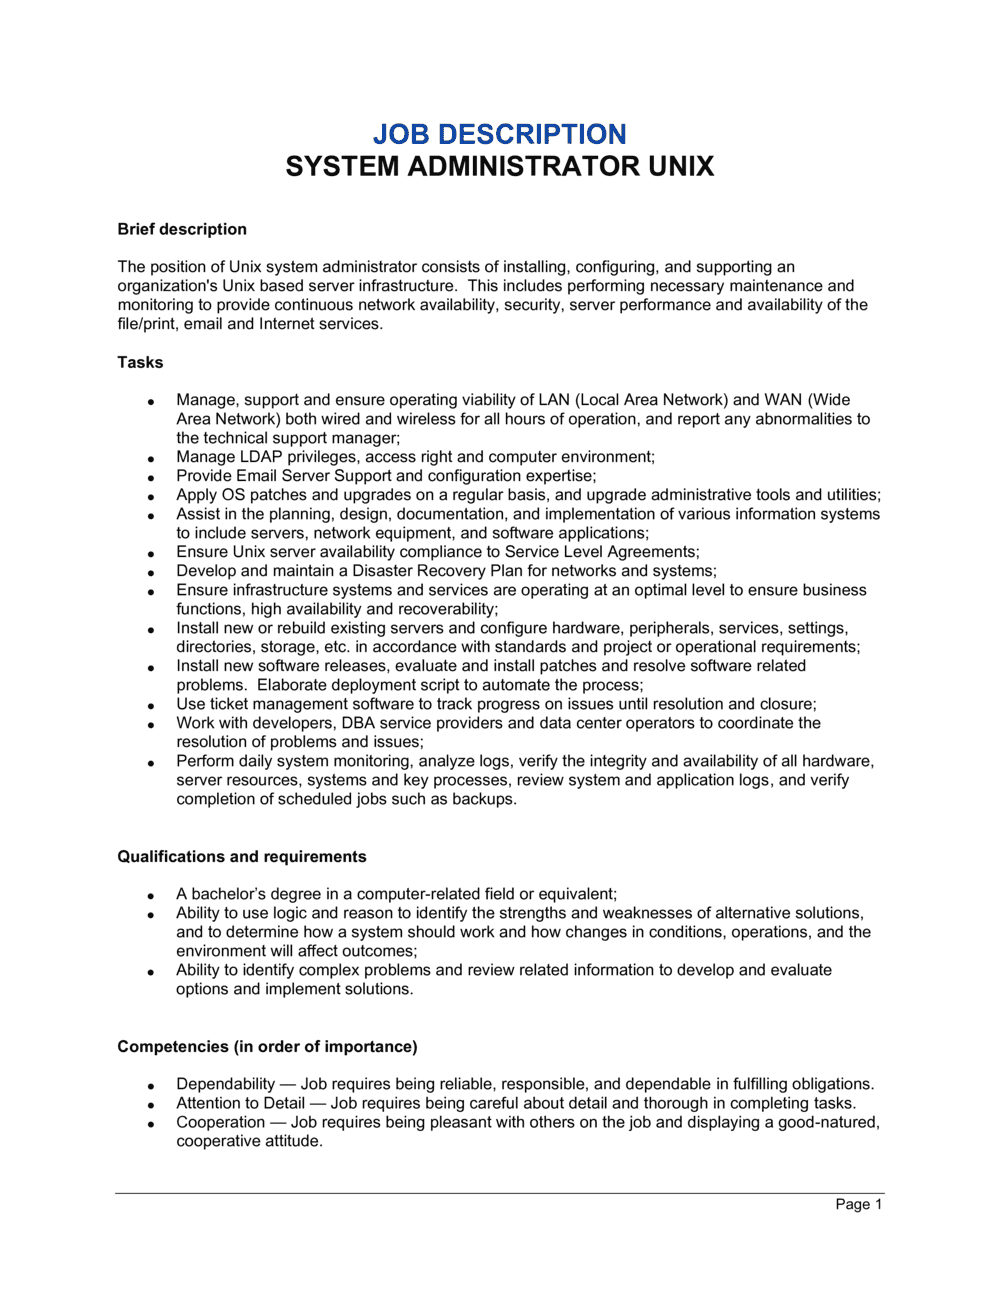 Business-in-a-Box's System Administrator Unix Job Description Template